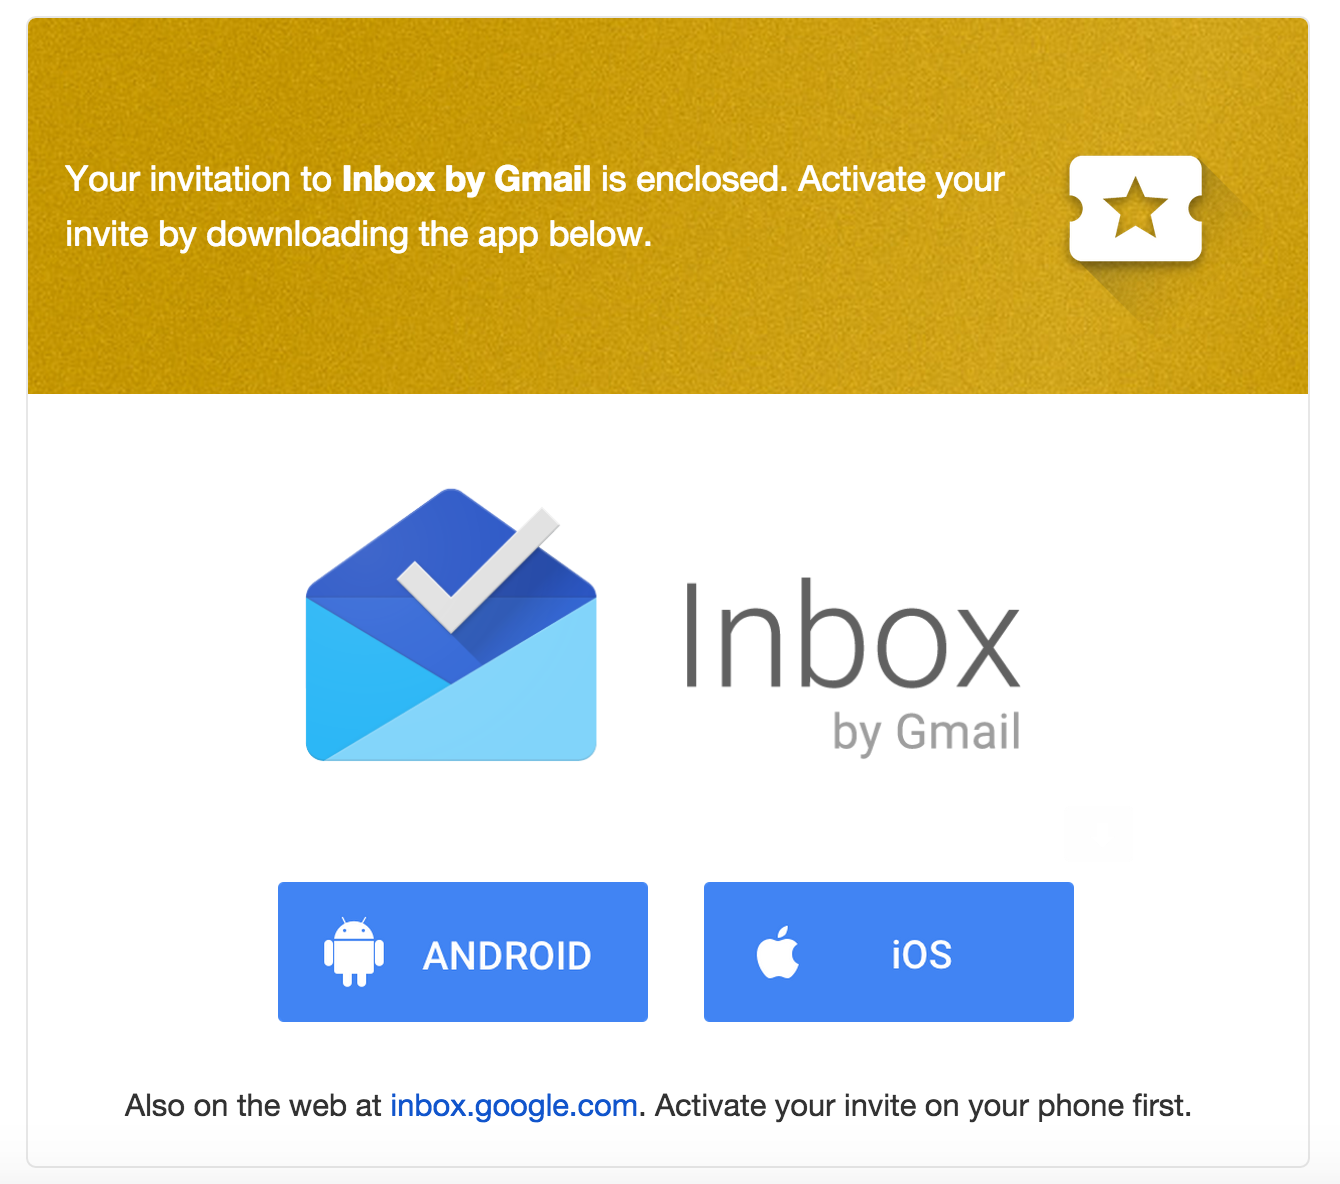 More Inbox By Gmail Invites Going Out Today